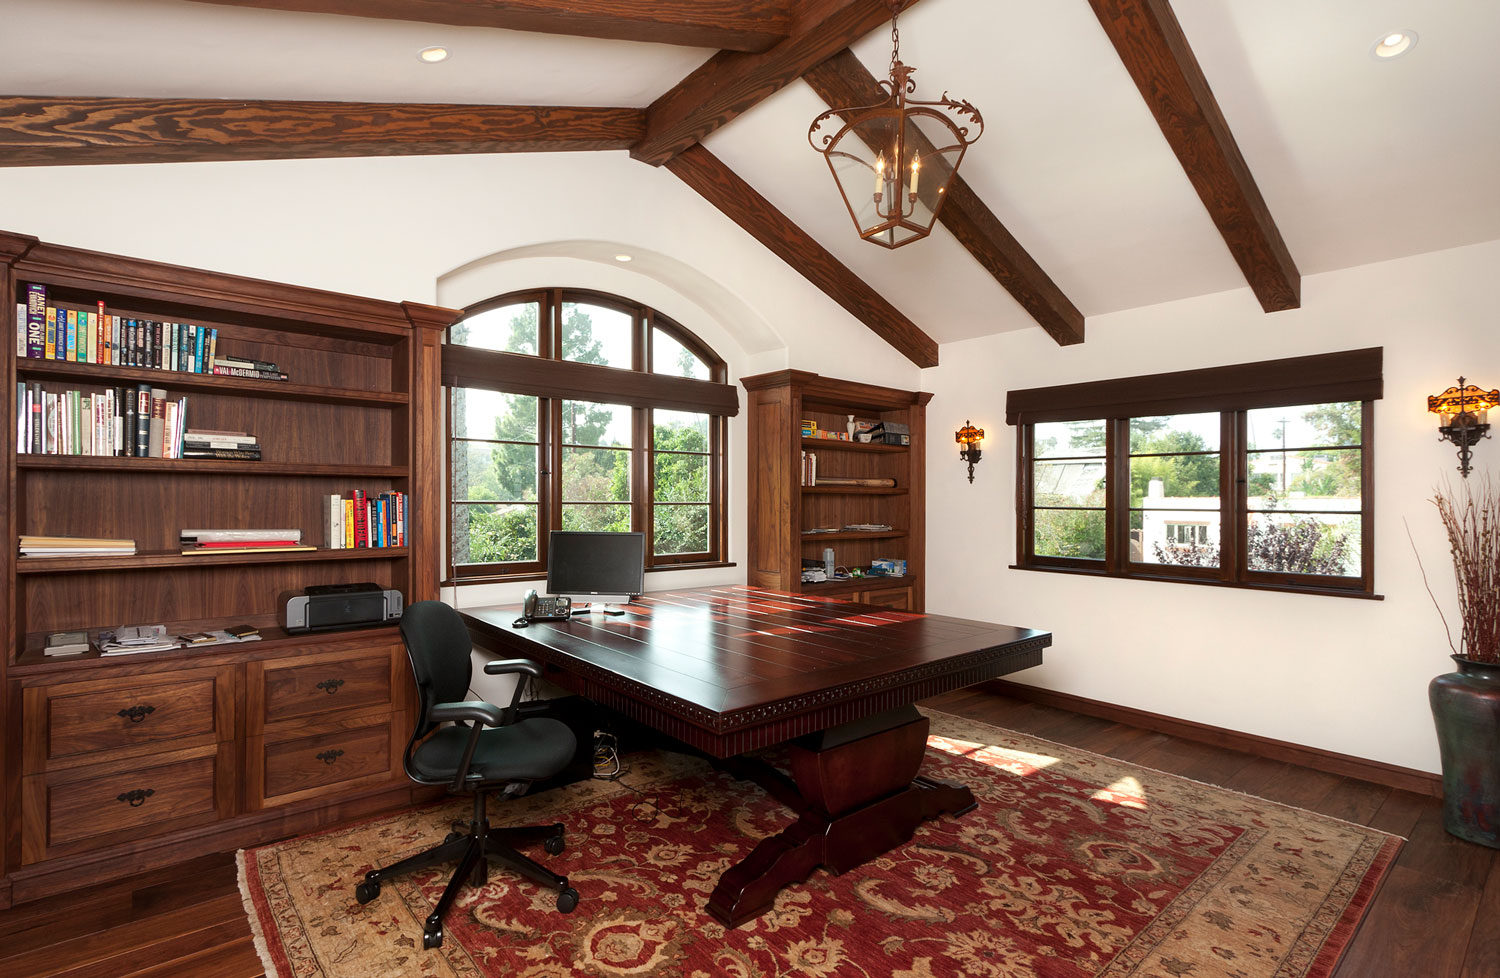 13-spanish-style-home-office-built-in-bookcases-gary-drake-general-contractor.jpg